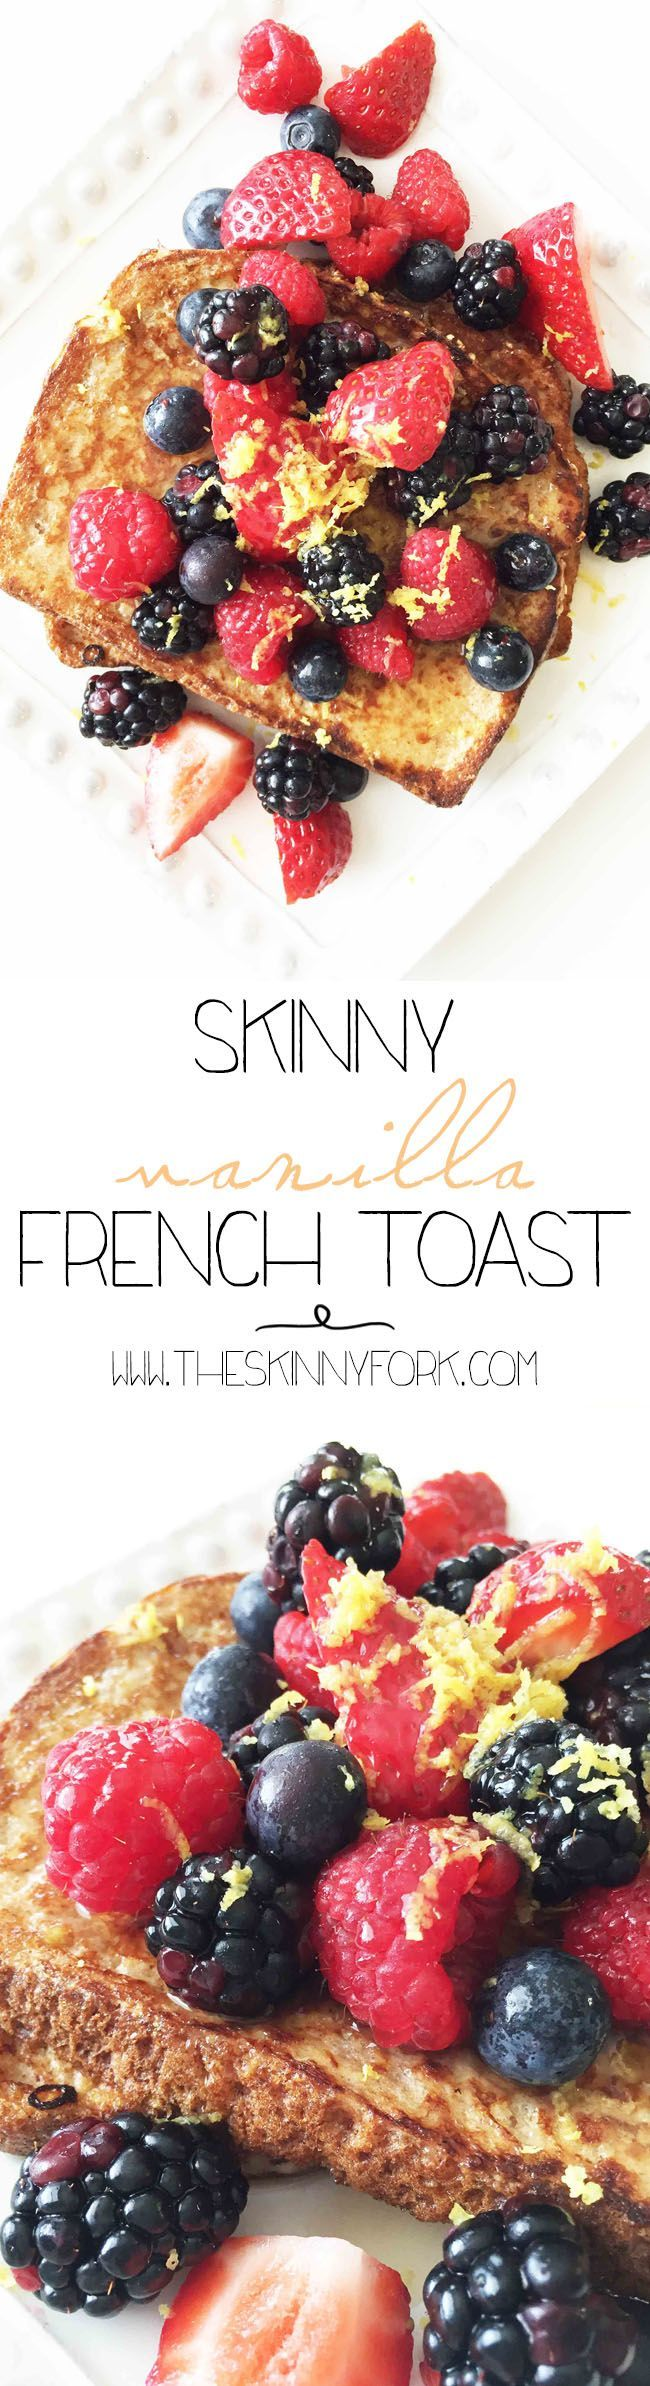 Skinny Vanilla French Toast Collection Of Solutions How To Make